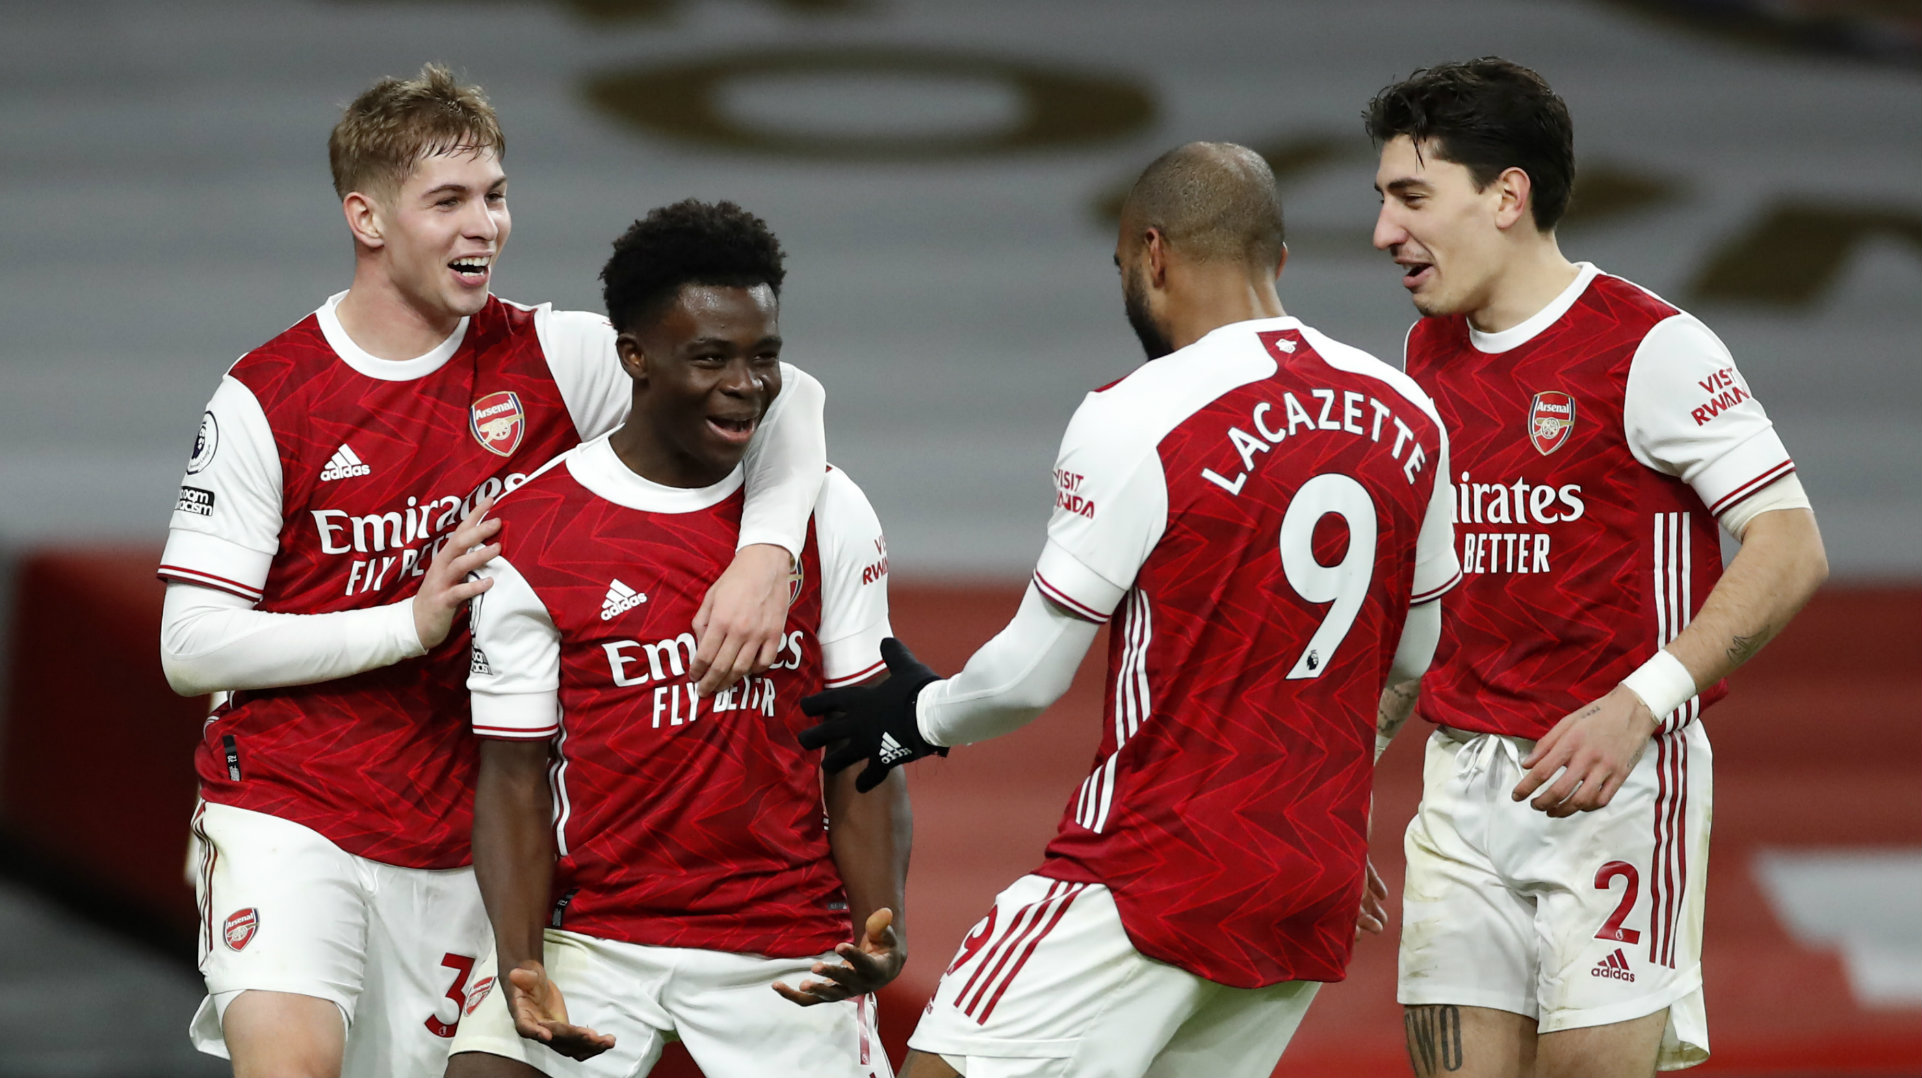 'Saka has the potential to be a world-class player' – Lauren lauds Arsenal youngster